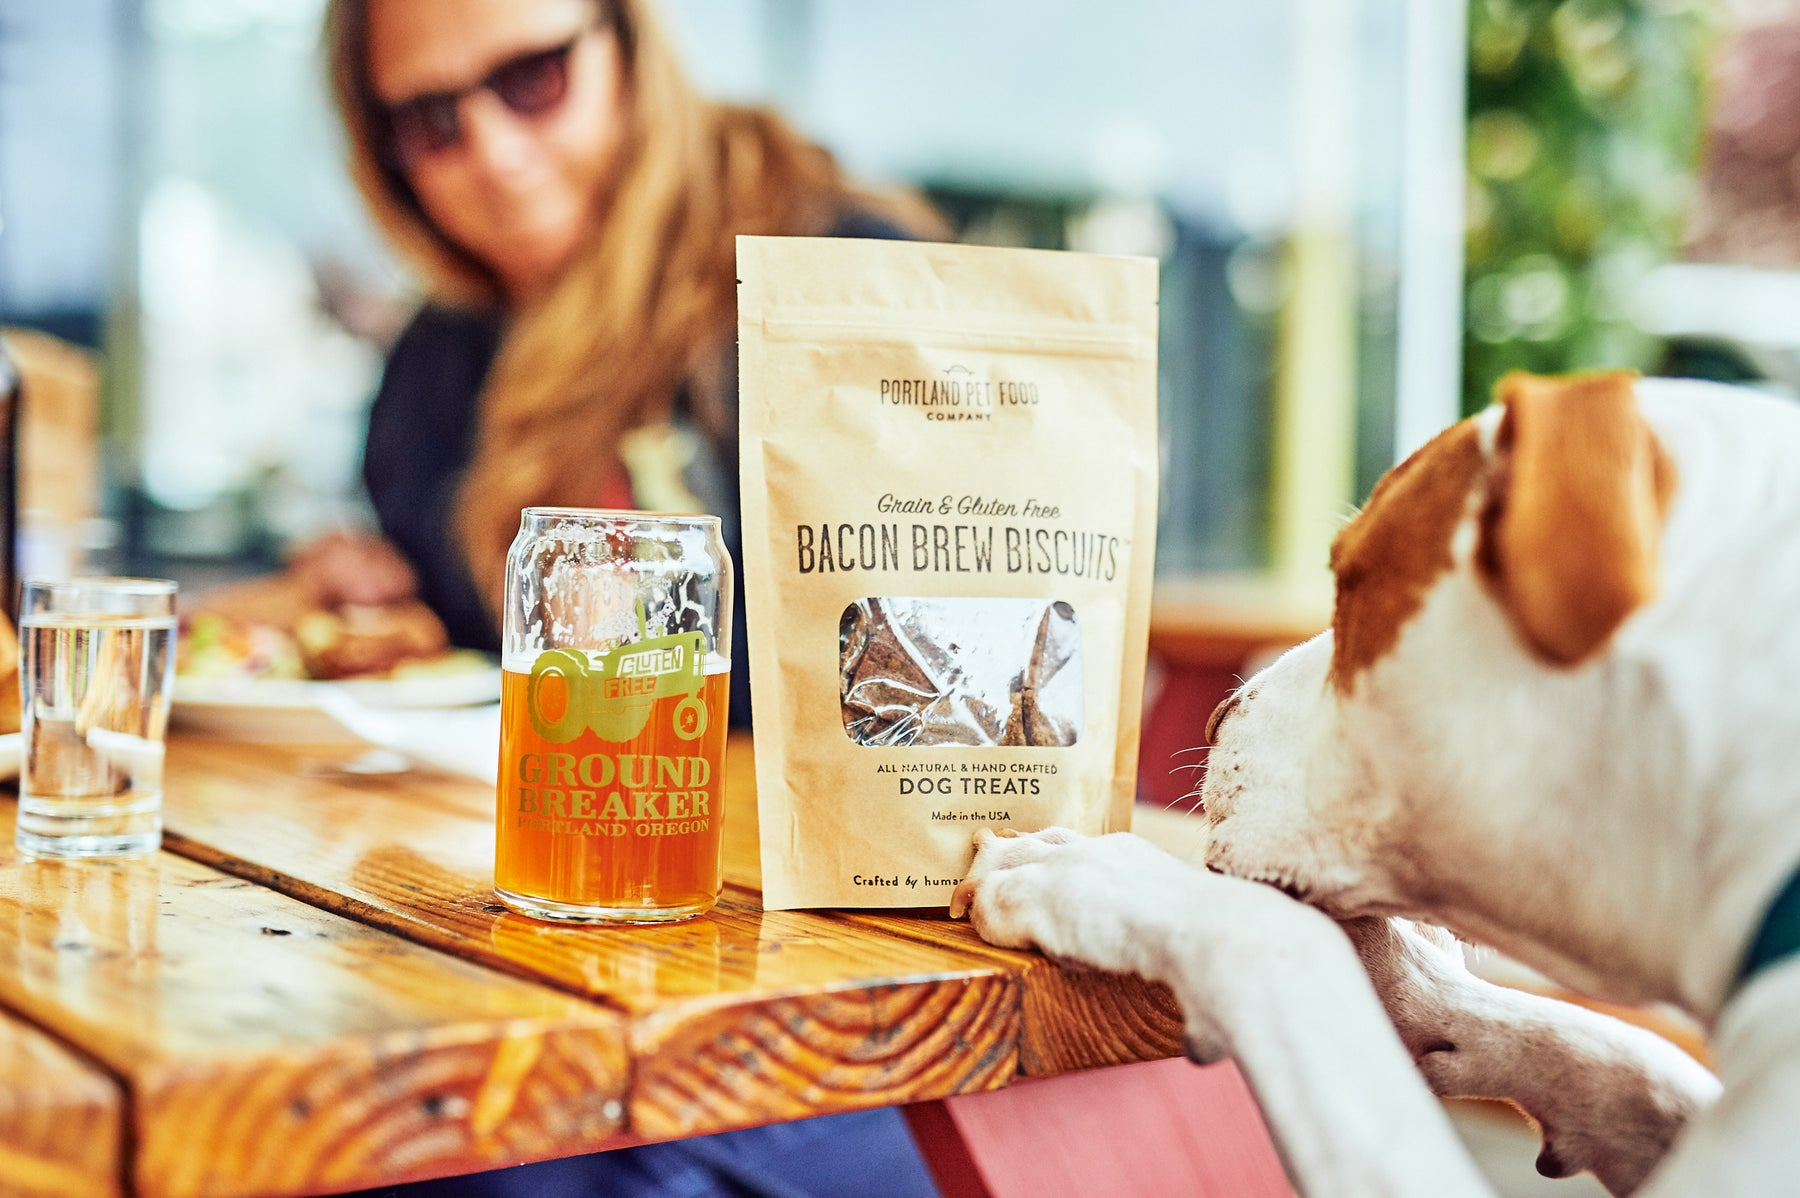 portland pet food company brew biscuits ground breaker brewing pit bull